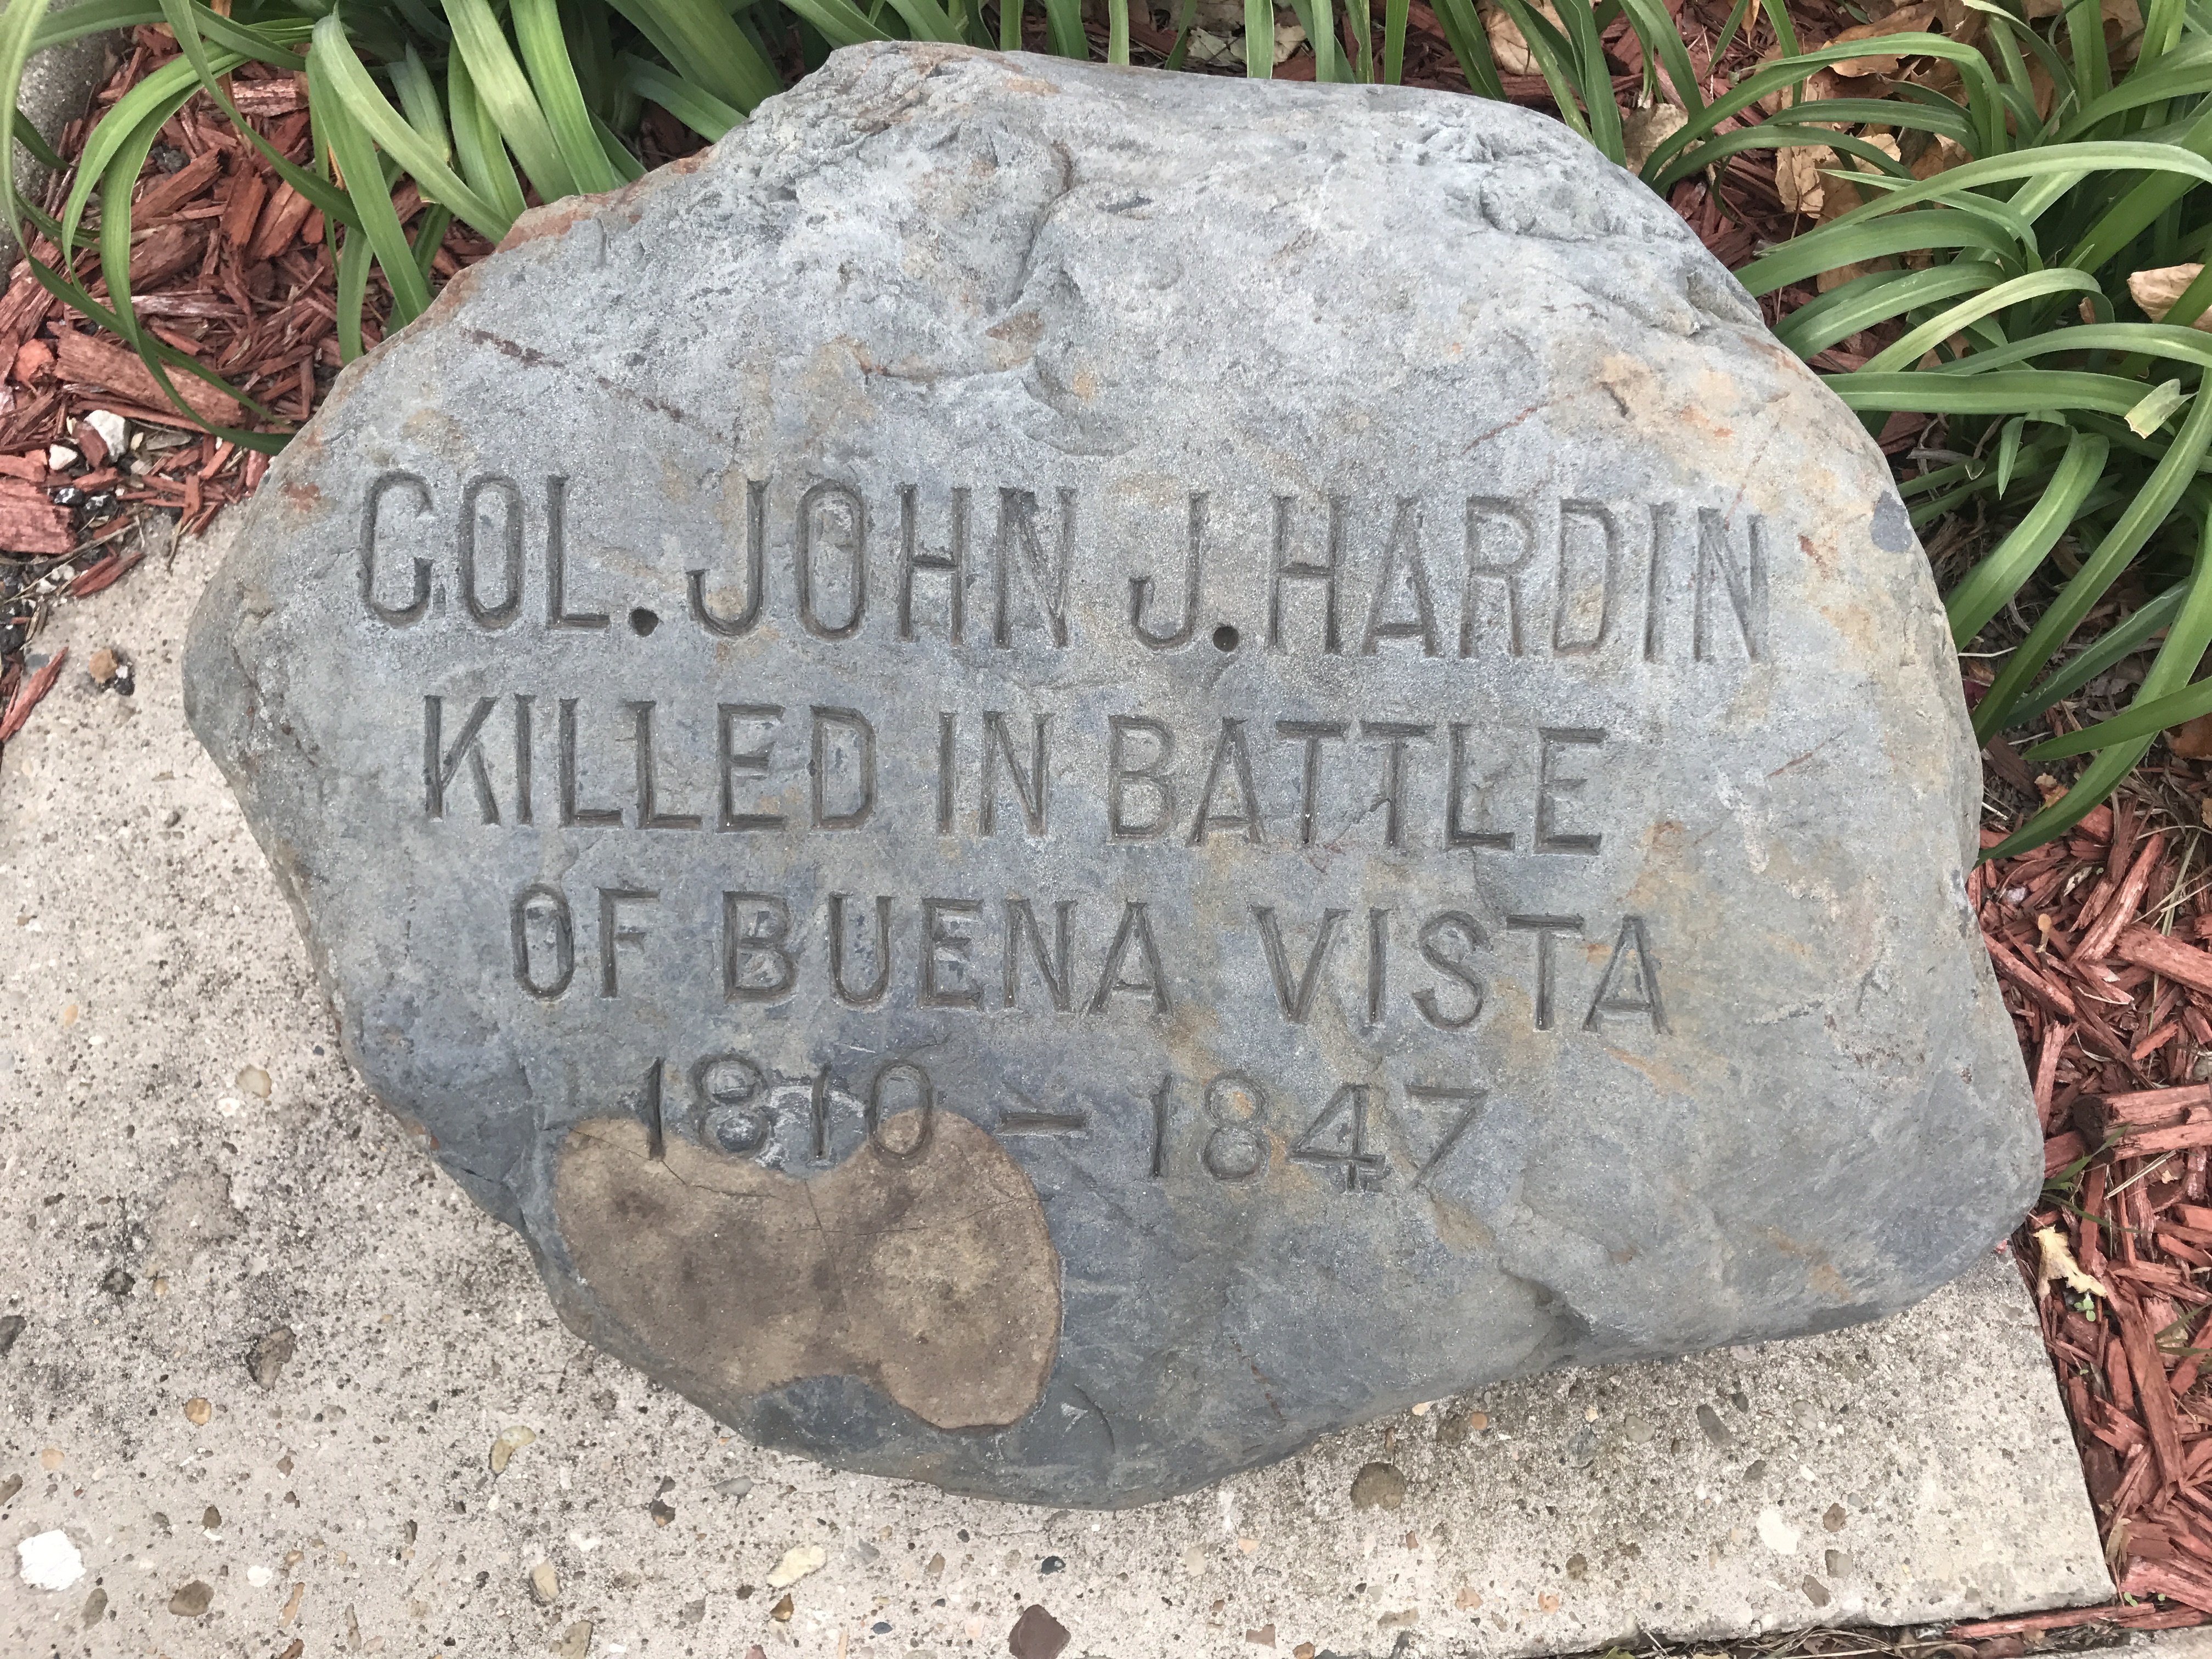 This is the stone marker that is at the site.